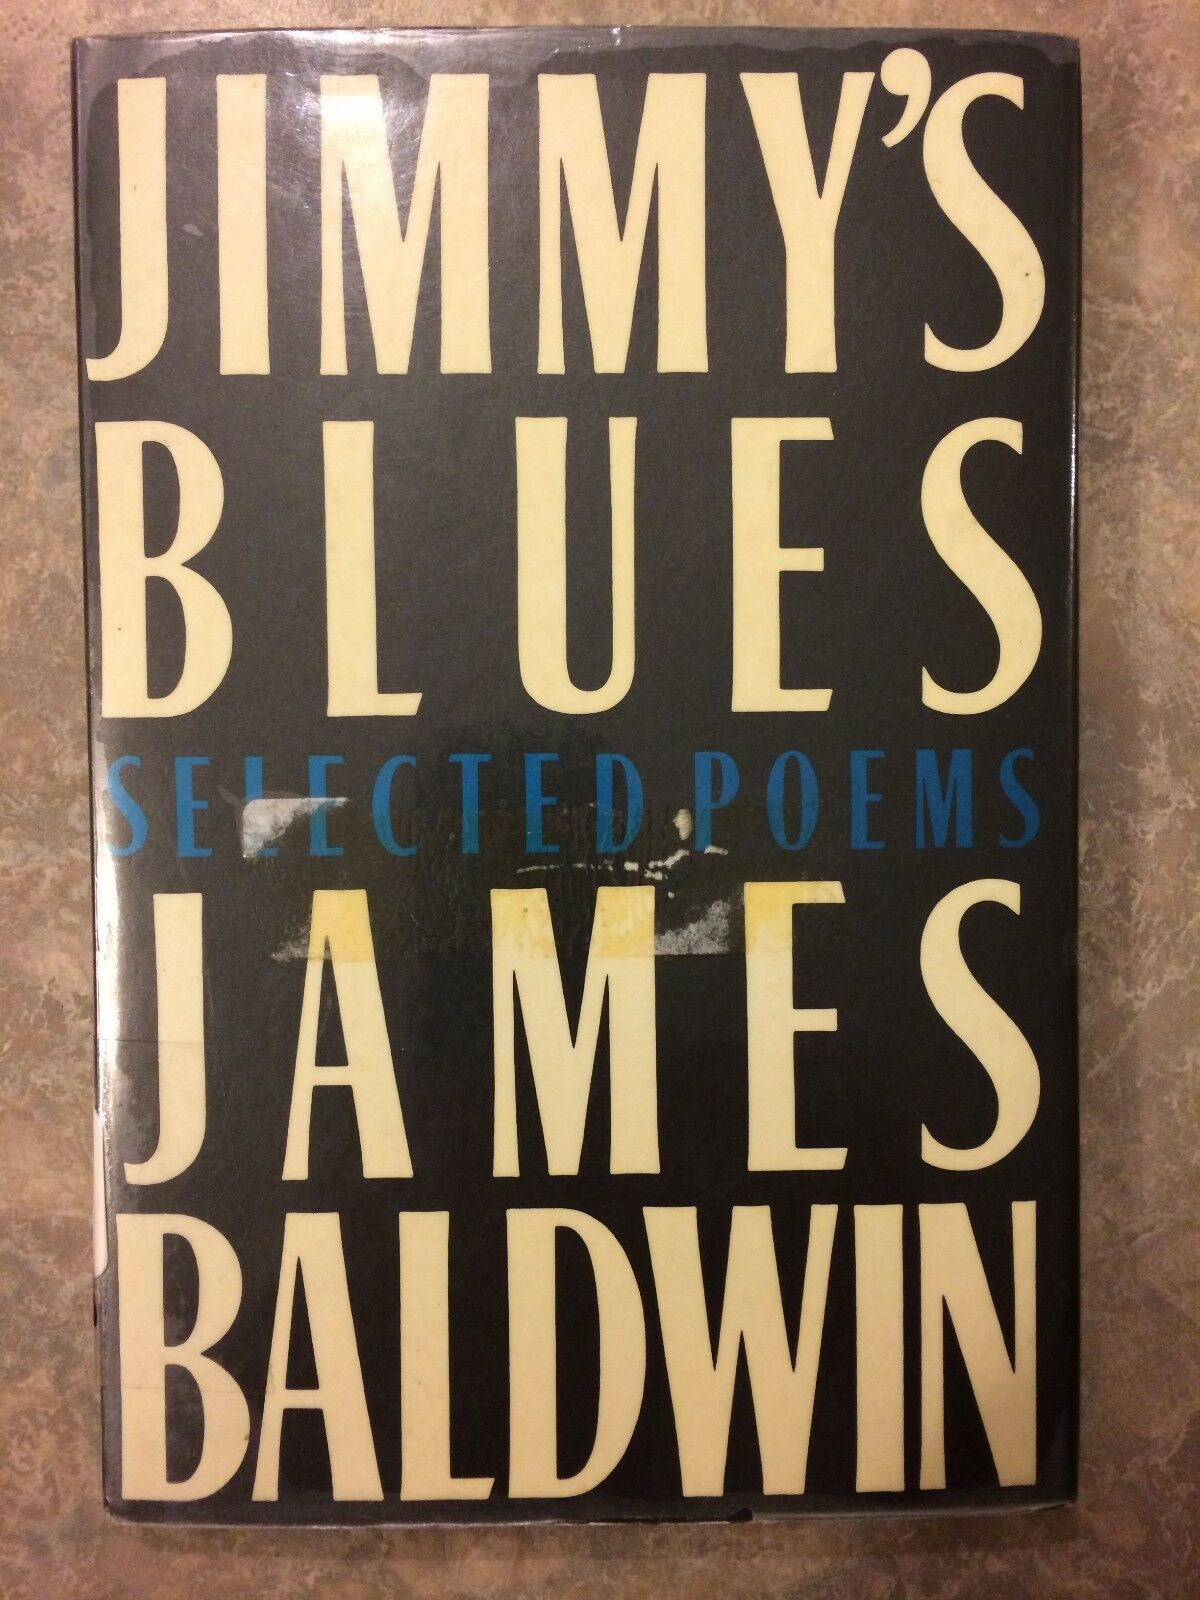 Jimmys Blues Selected Poems By James Baldwin 1986 Hardcover